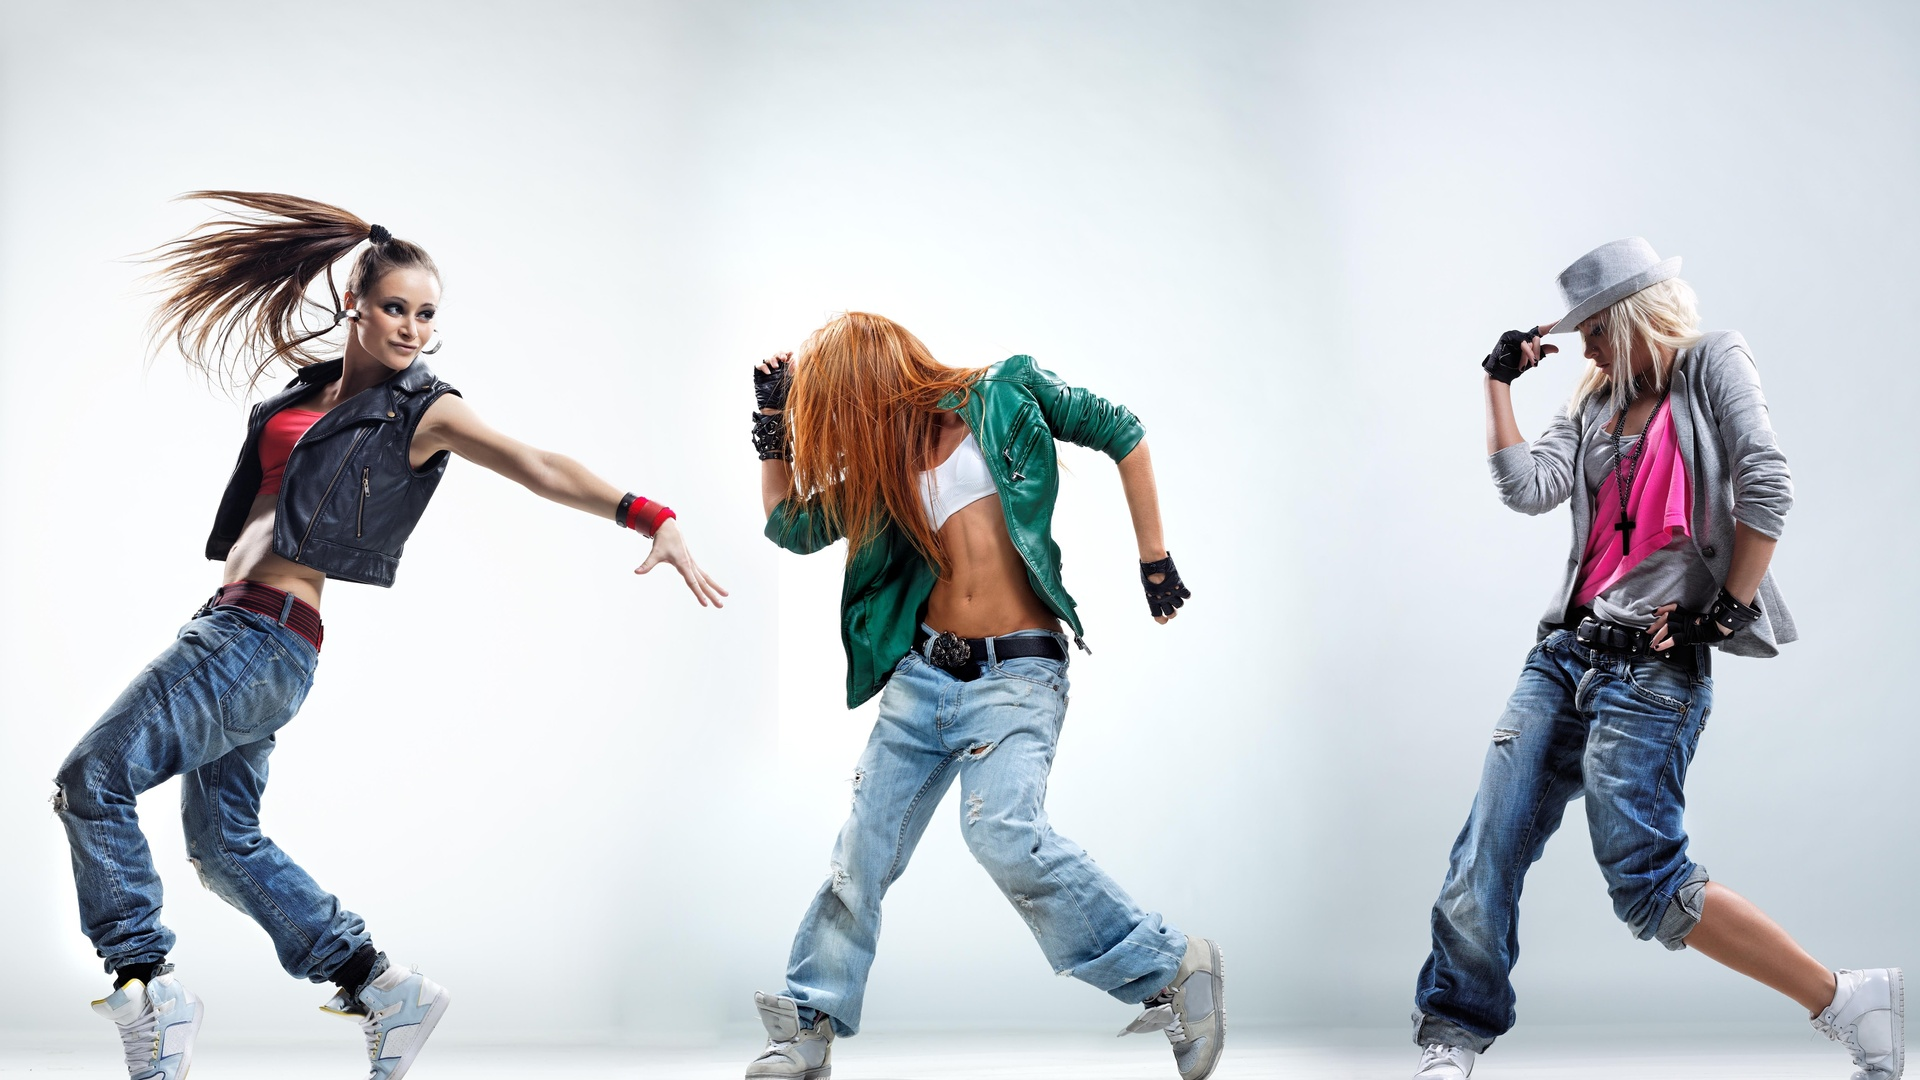 Hip Hop Dance Girl Wallpaper PC Wallpaper WallpaperLepi 1920x1080